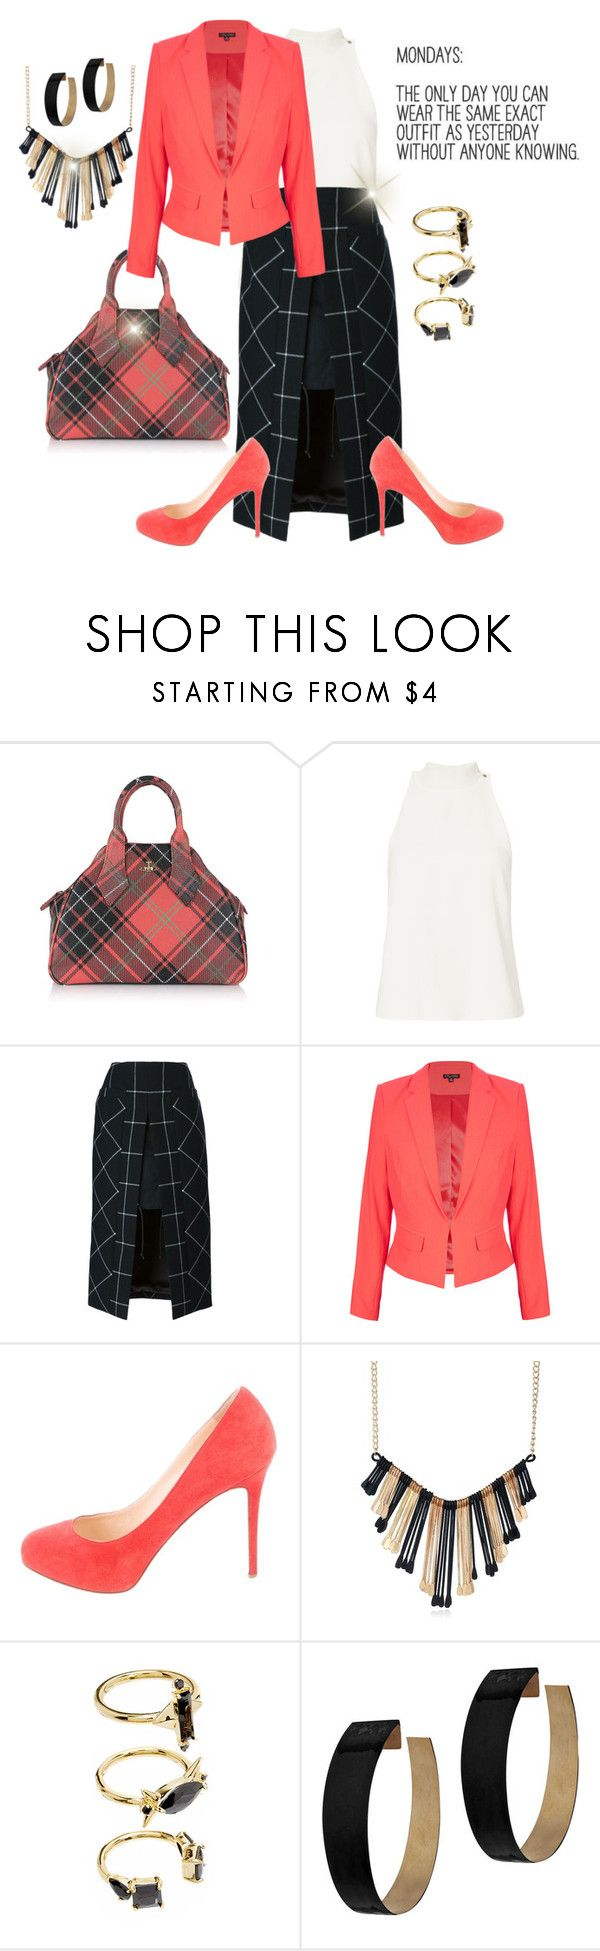 """""""Case of the Mondays"""" by jfcheney ❤ liked on Polyvore featuring Vivienne Westwood, A.L.C., Sacai, City Chic, Christian Louboutin, Noir Jewelry and Zimmermann"""